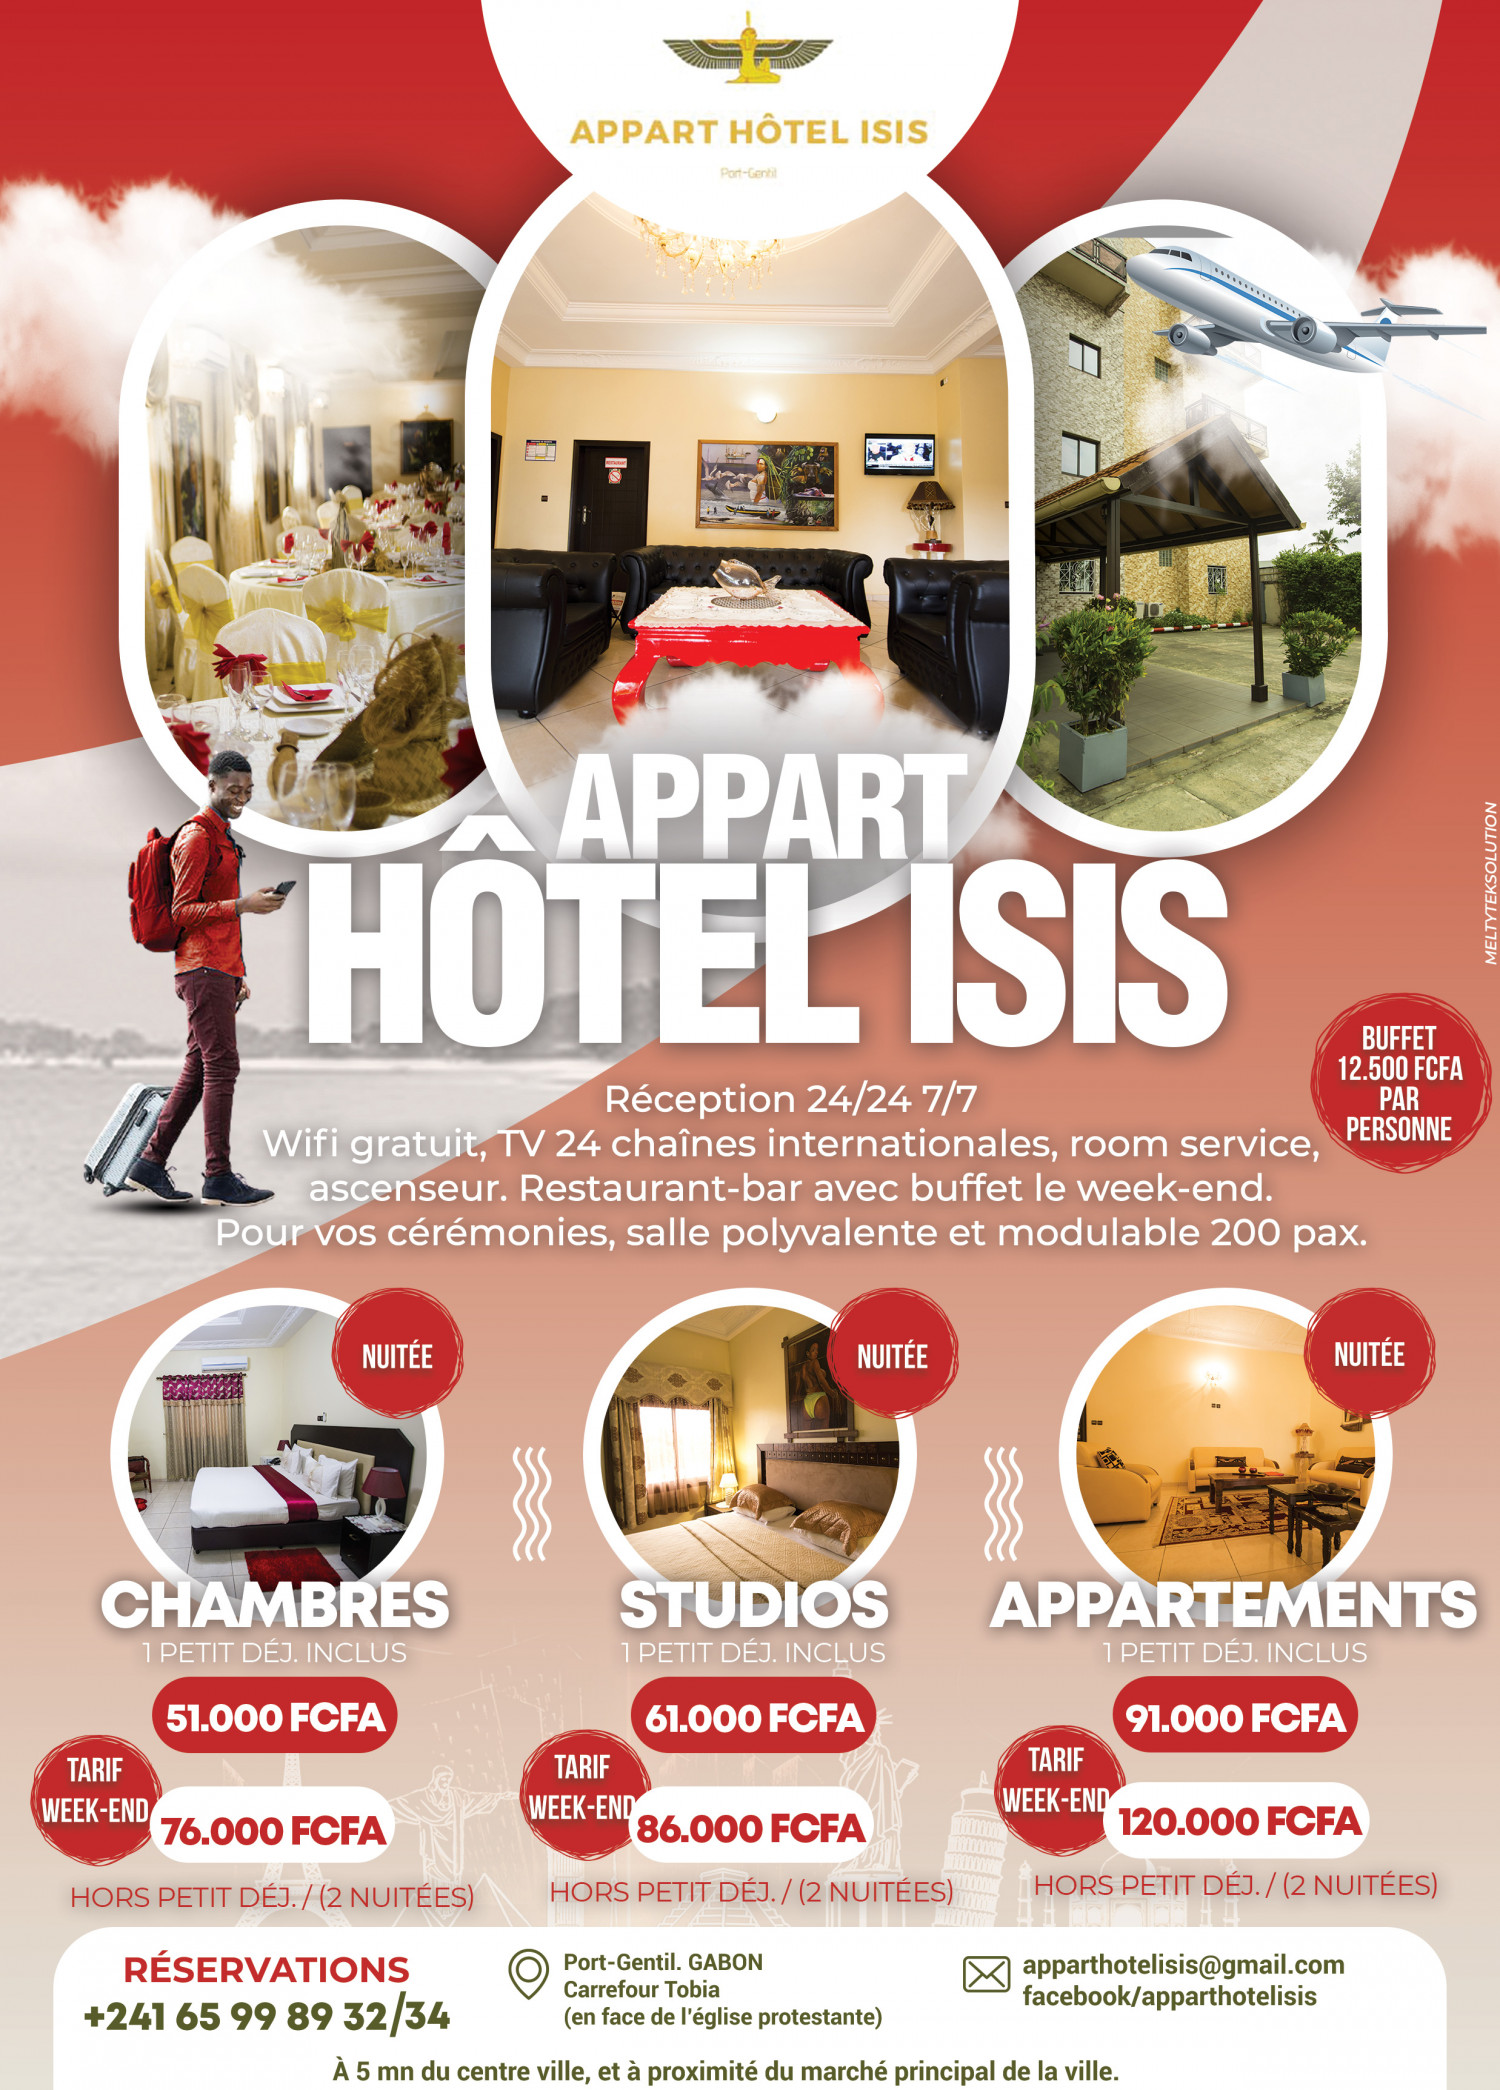 Appart Hotel ISIS Infographic